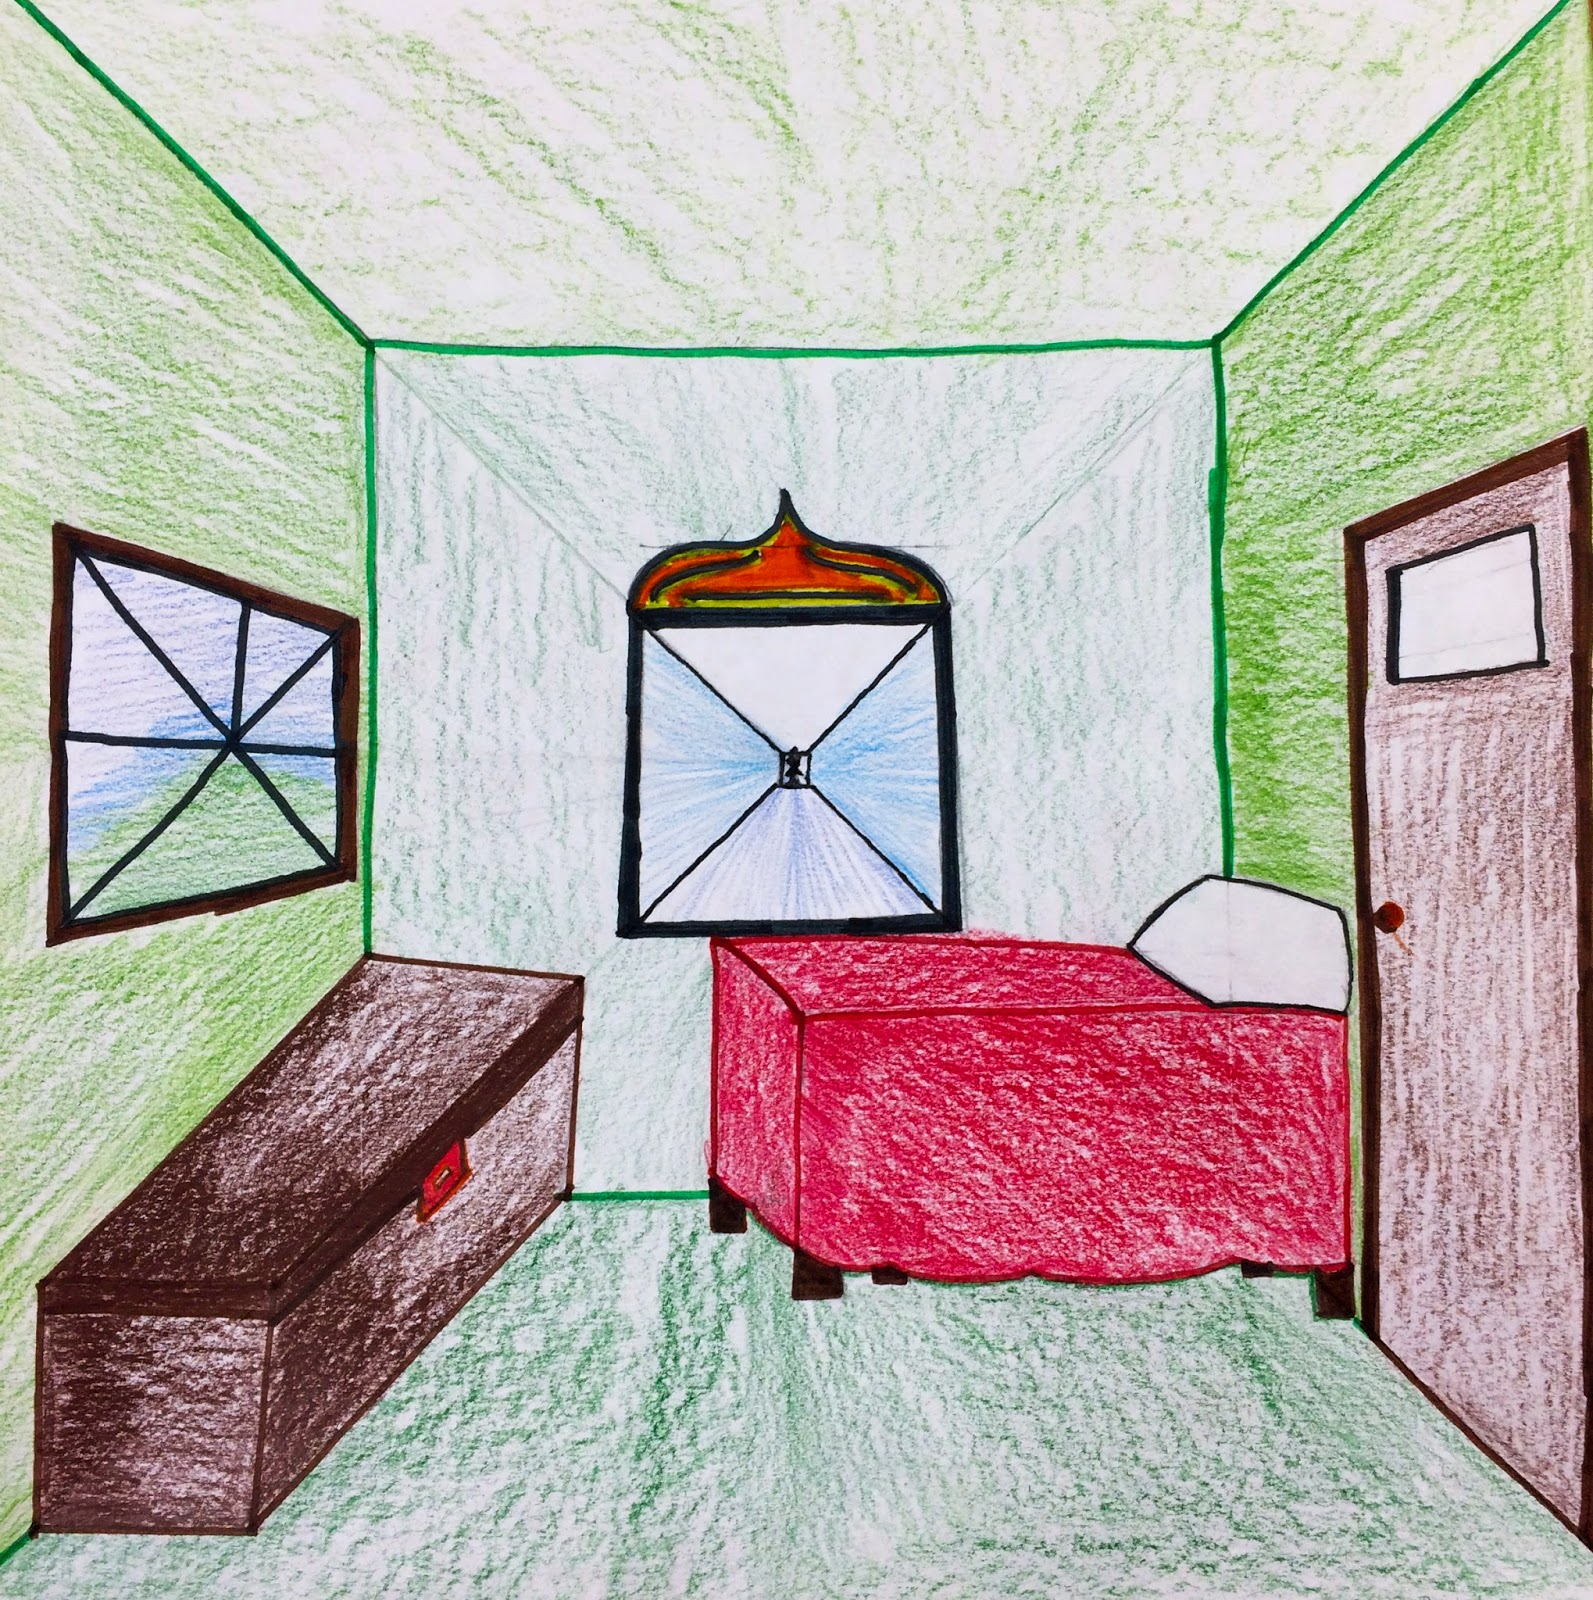 Drawn room imaginary One Draw Point Art Helpful